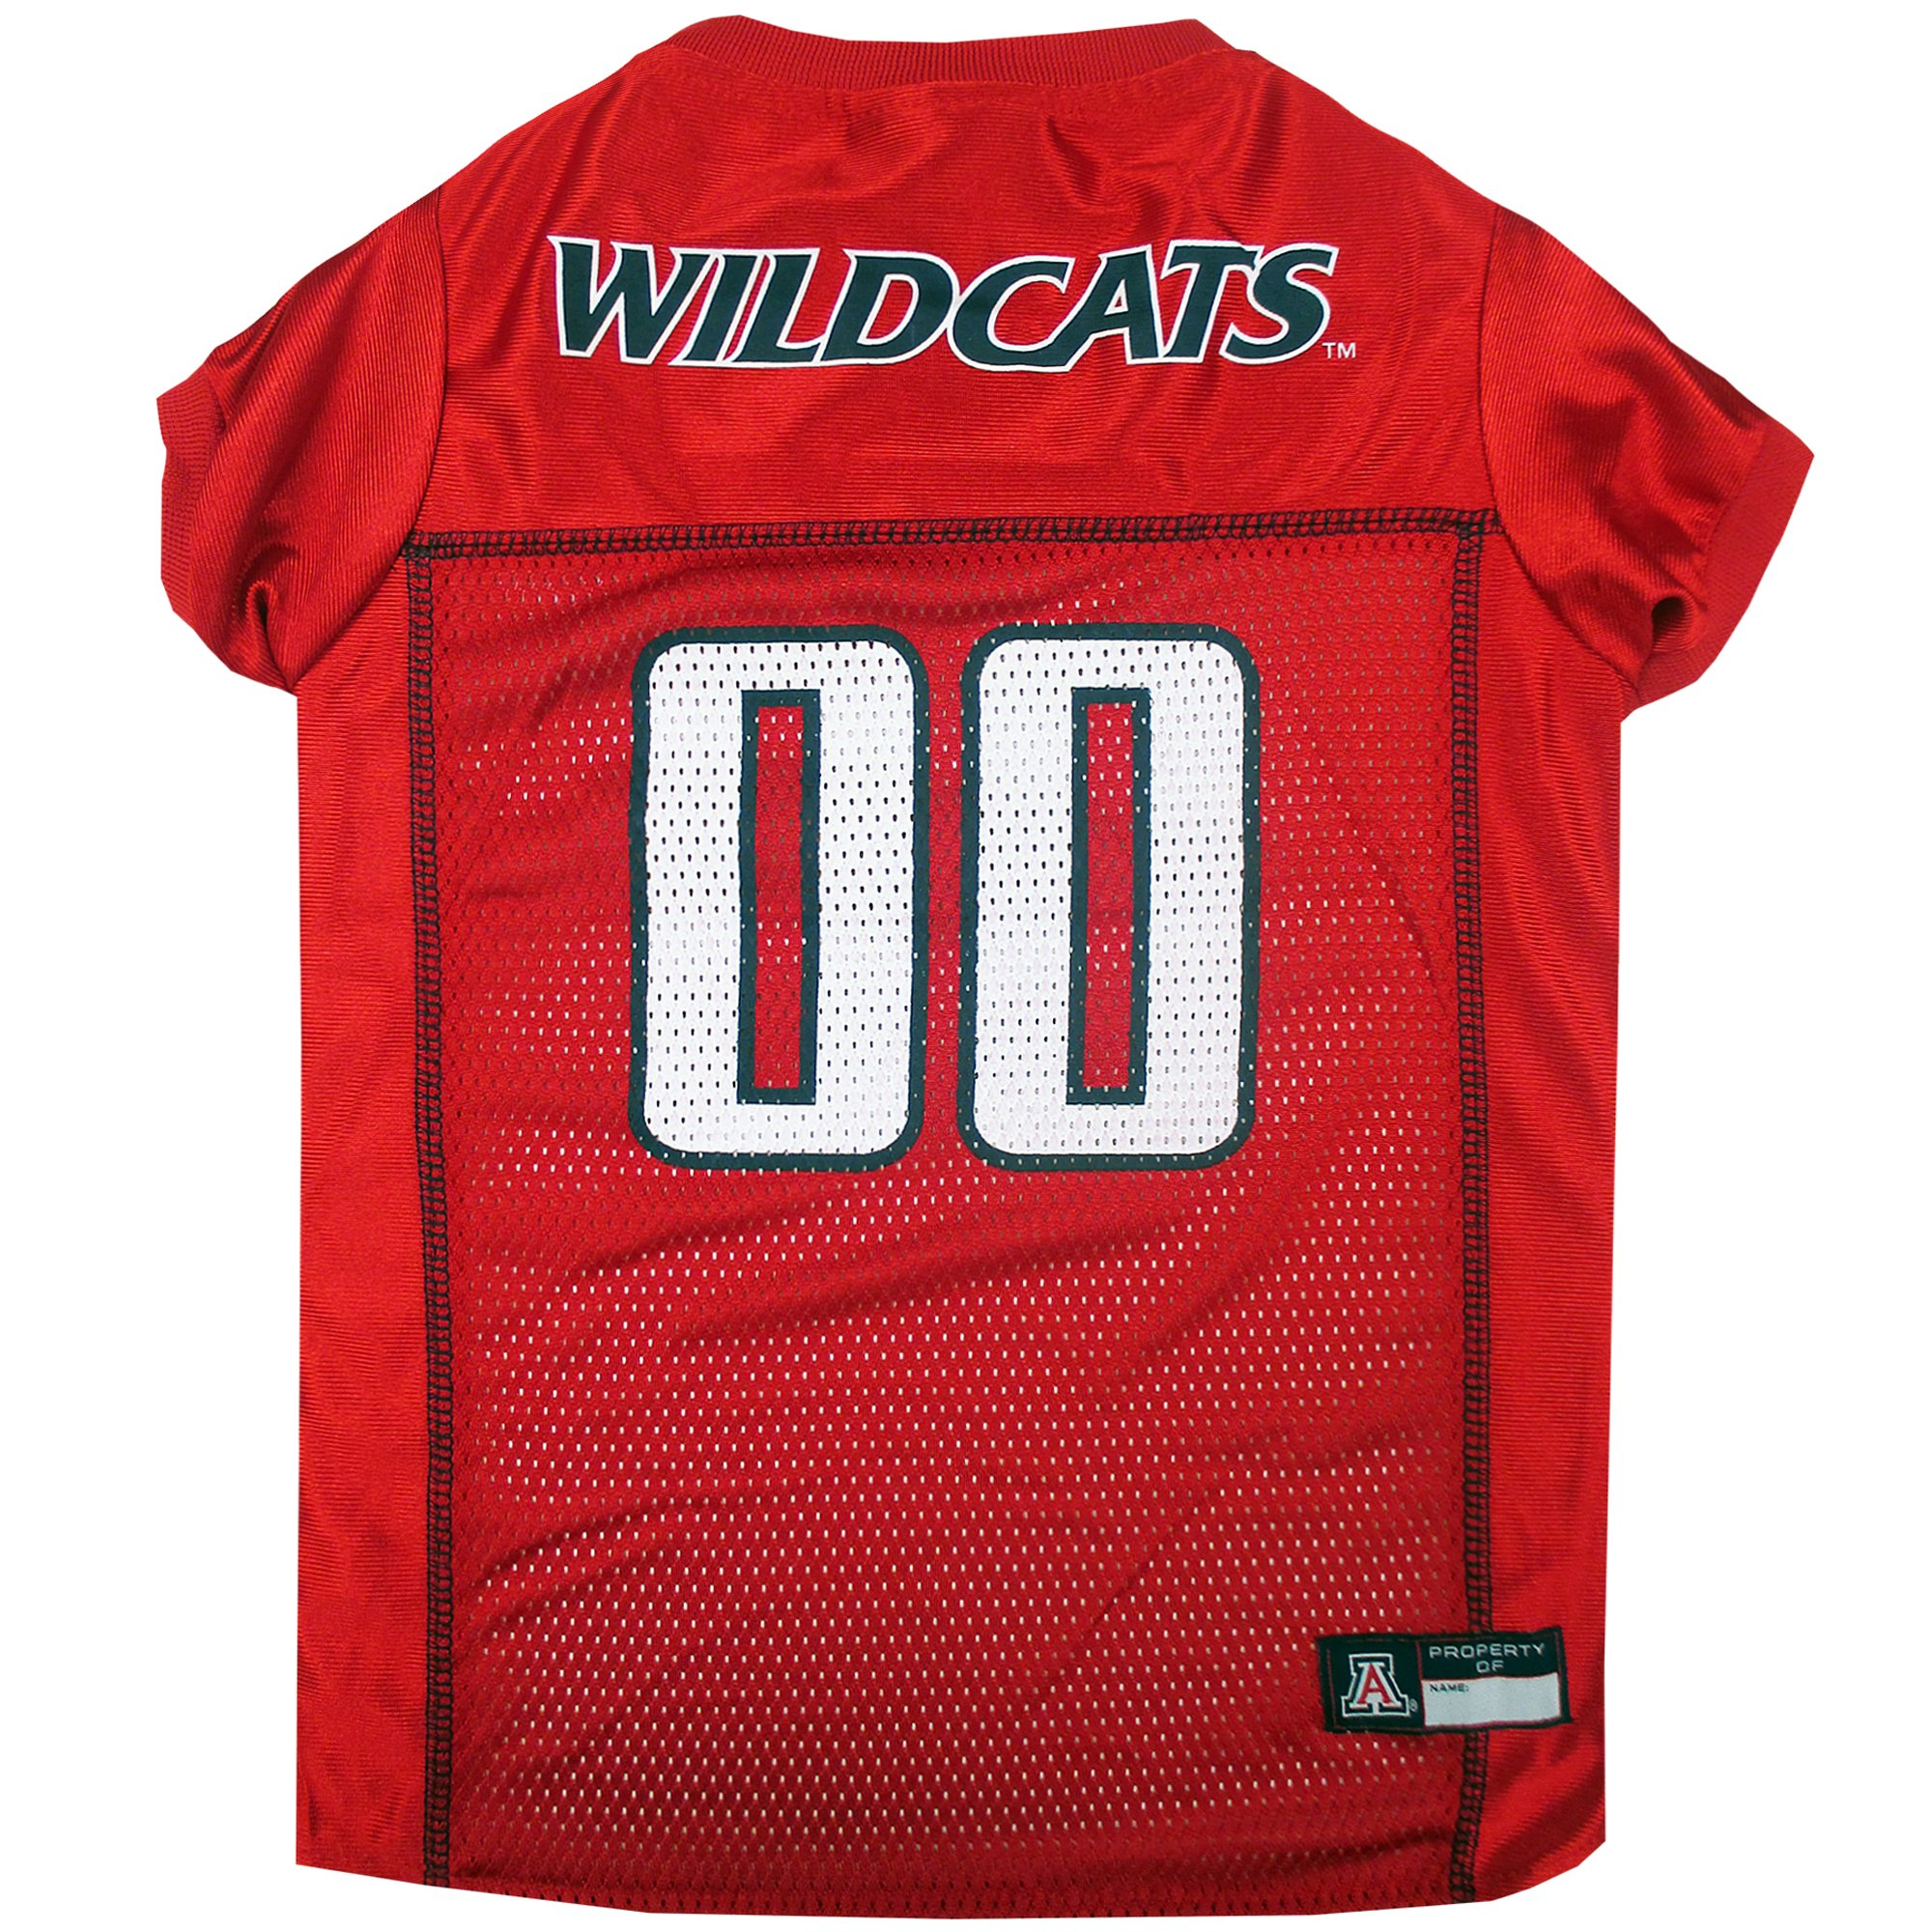 Pets First Company: Arizona Team Logo Mesh Jersey for Dogs